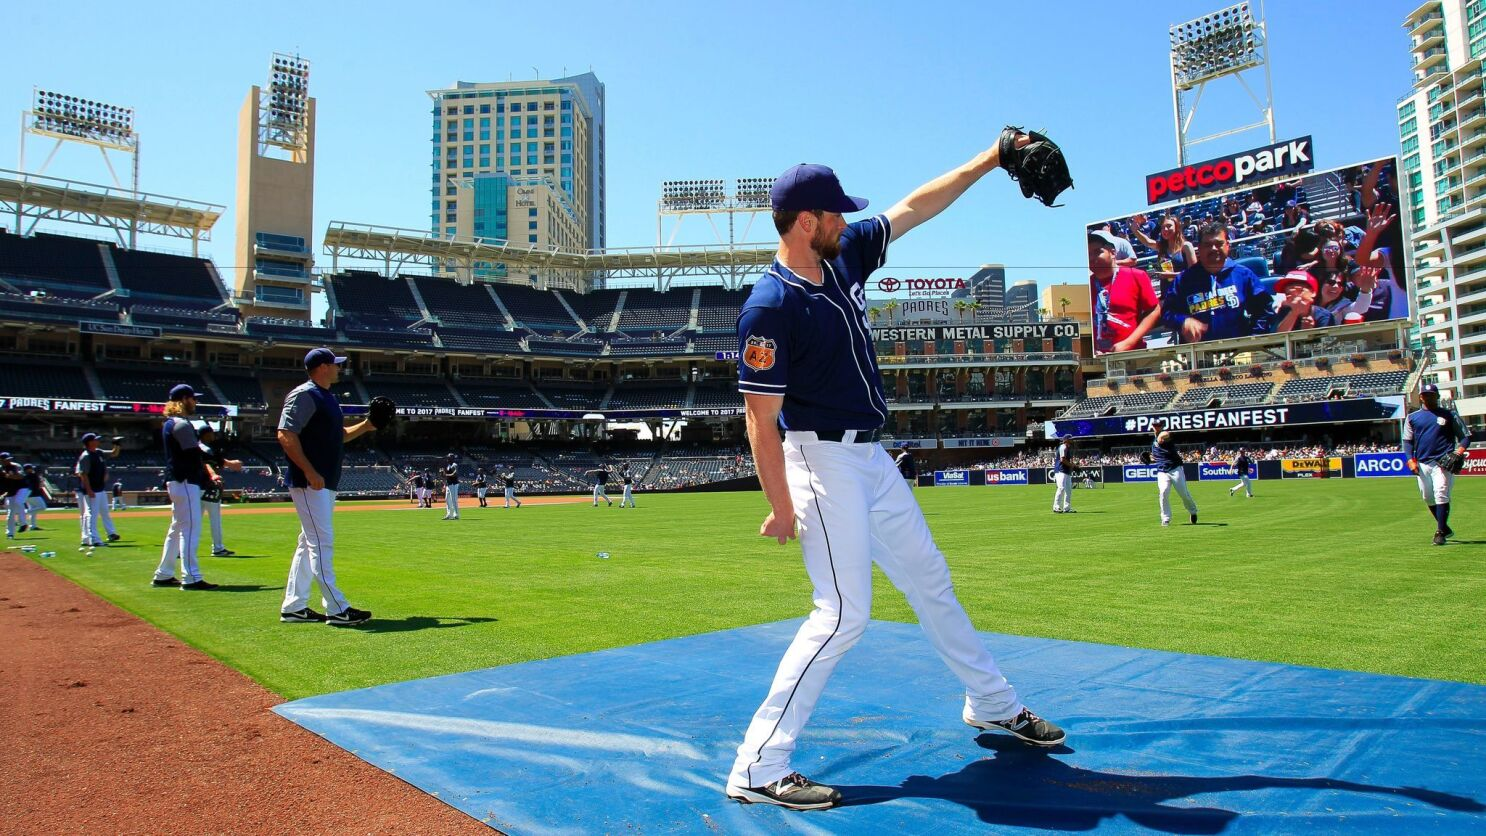 720ef09e1 Once a pitcher's paradise, Petco Park seems to be playing fairer than ever  - The San Diego Union-Tribune